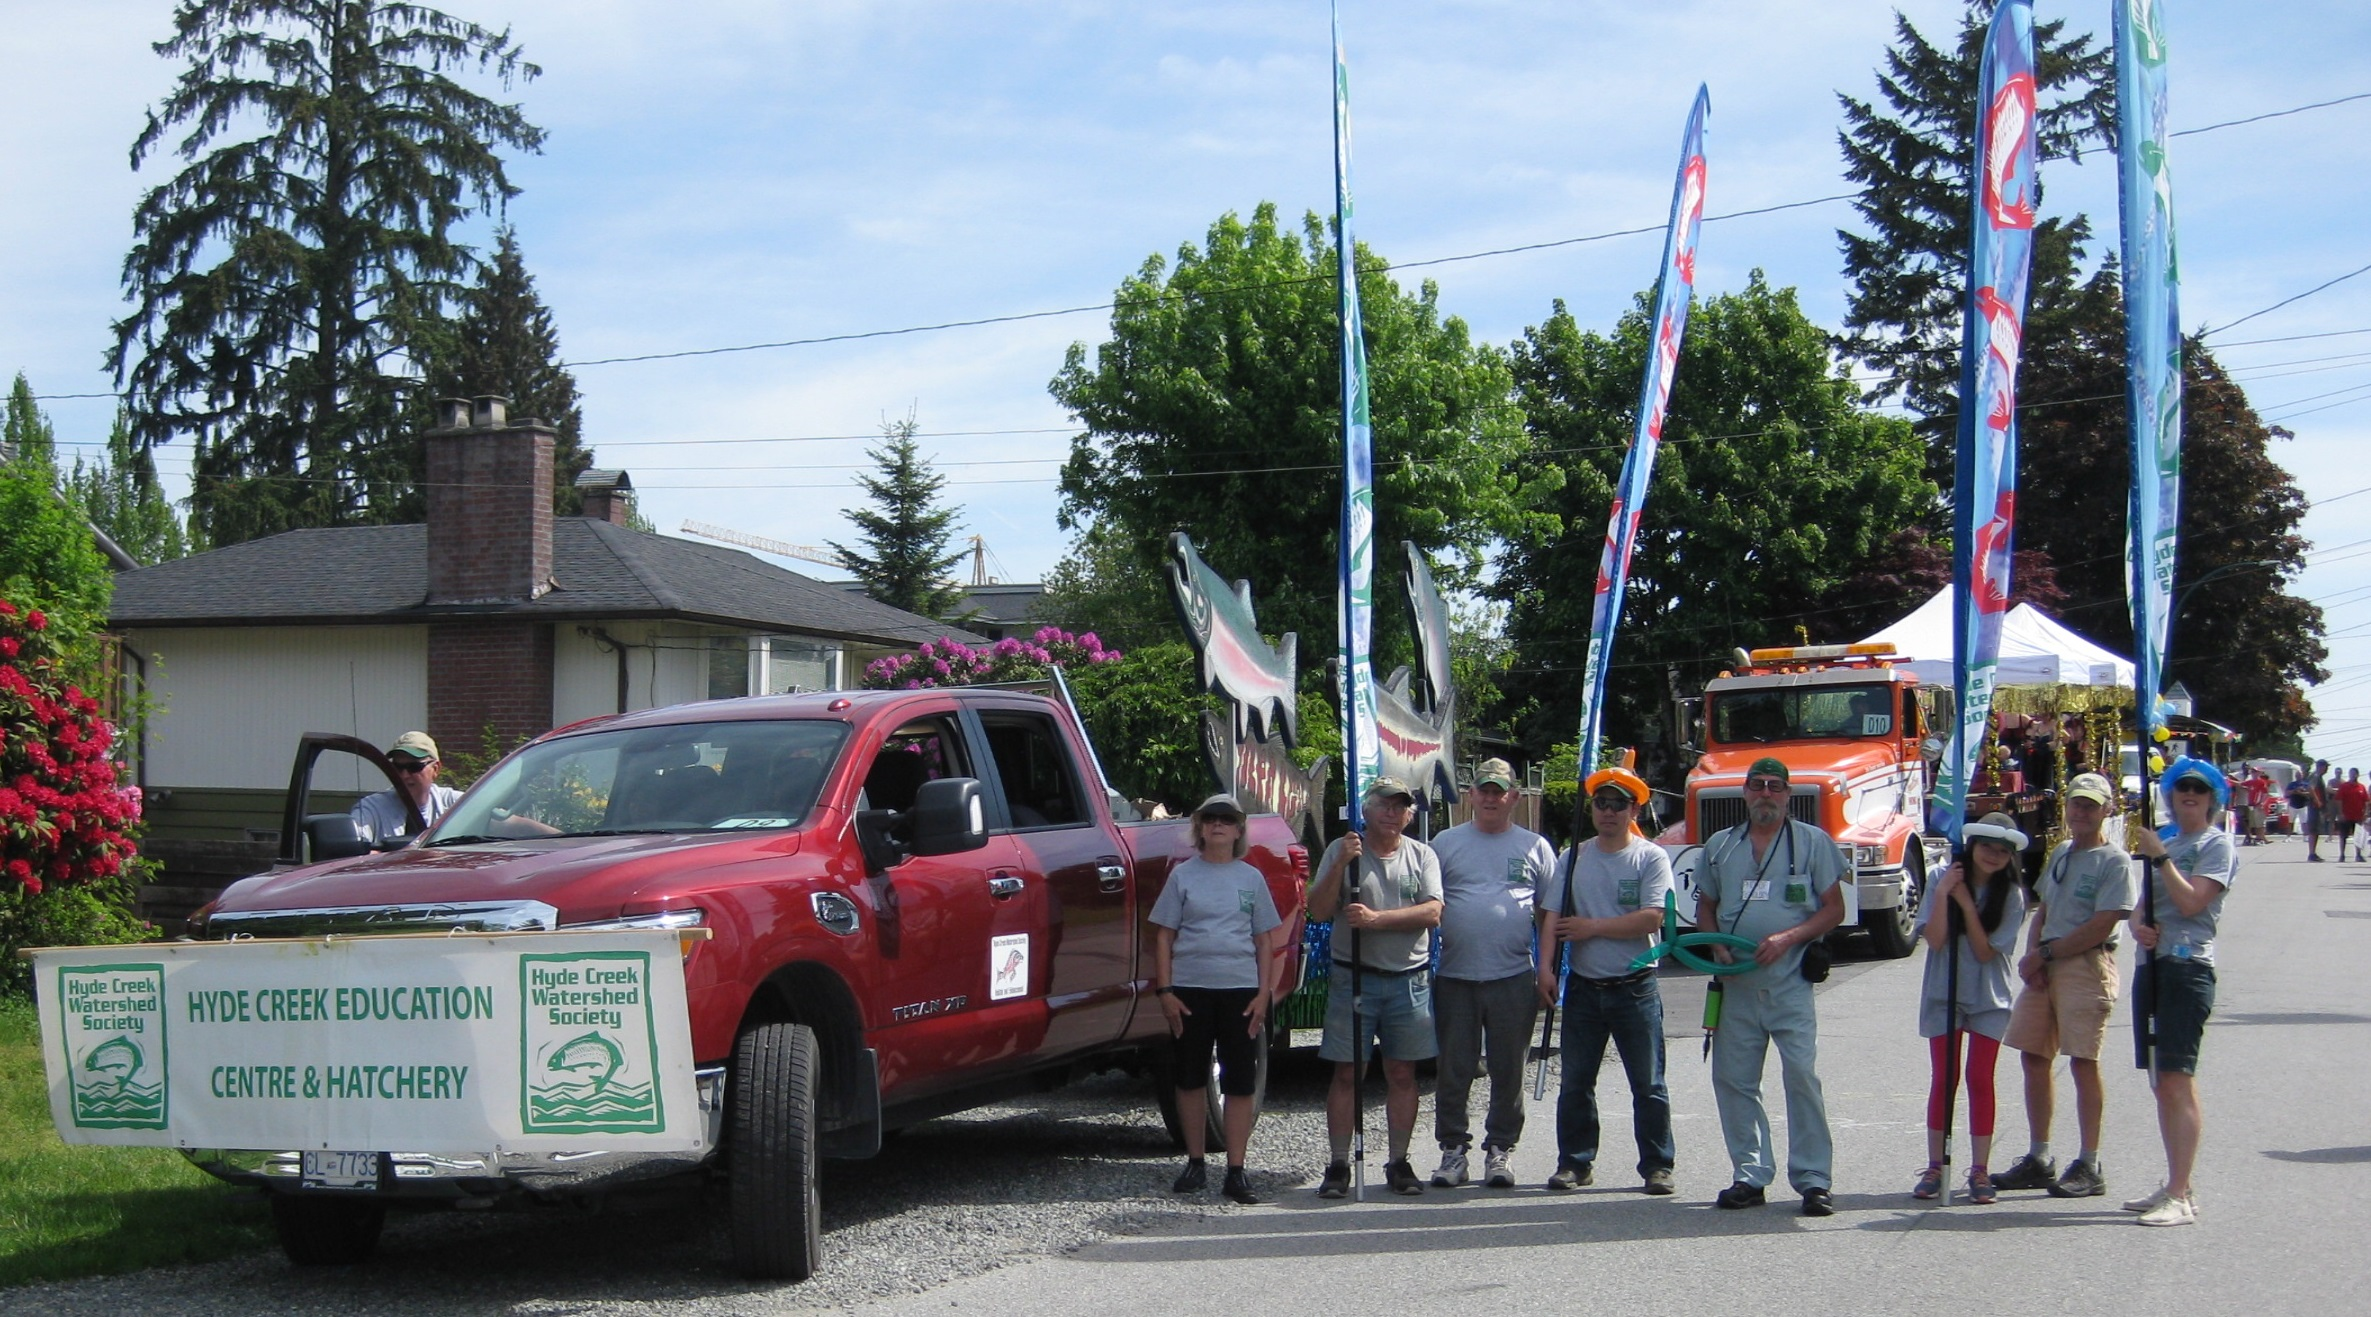 May Day Parade - May 11th, 2019Members joined the HCWS float in Port Coquitlam's May Day Parade.